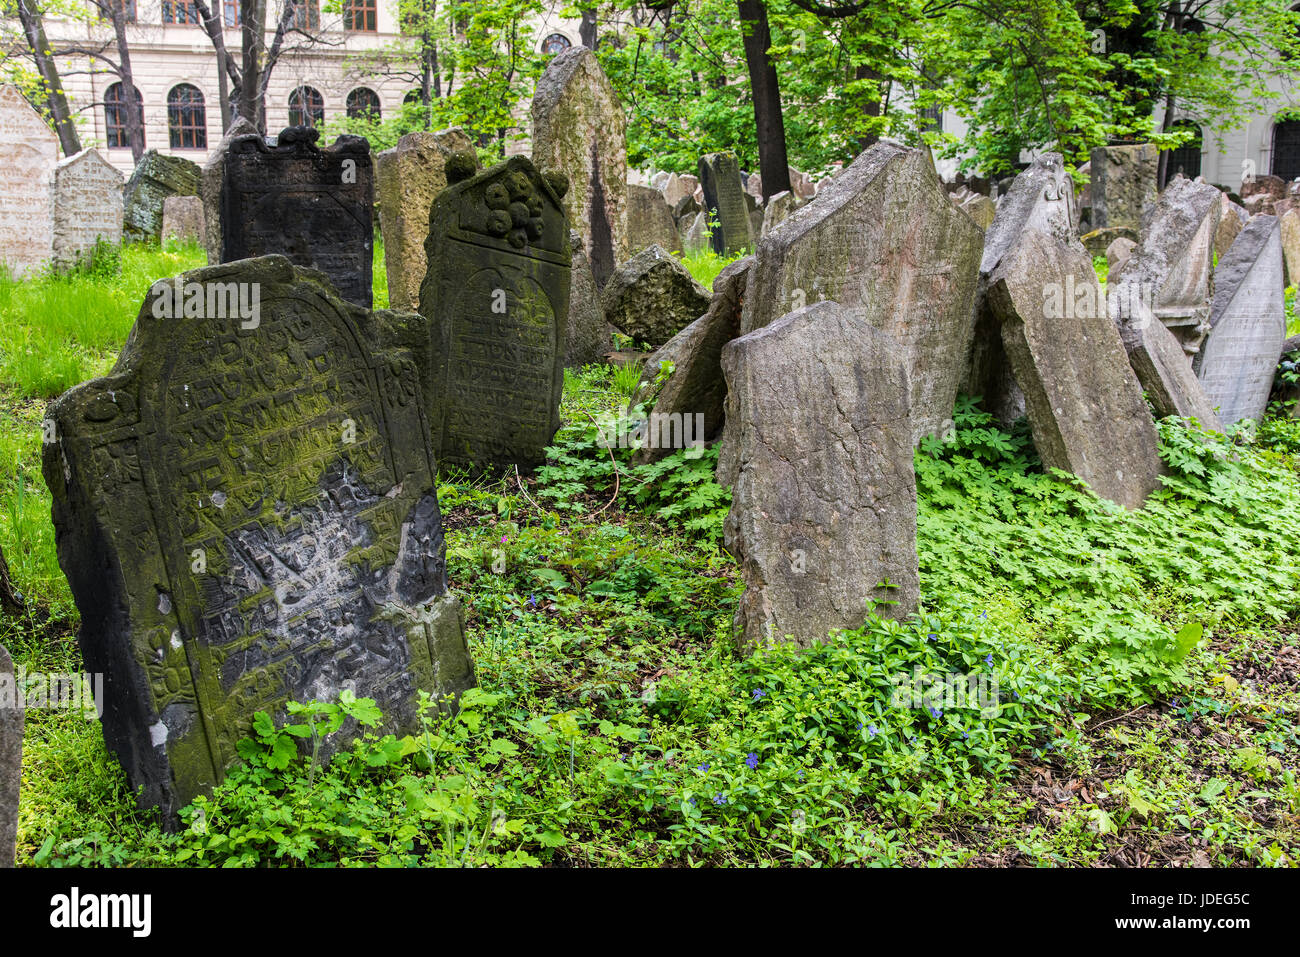 Gravestones in the Old Jewish Cemetery, Prague, Bohemia, Czech Republic Stock Photo